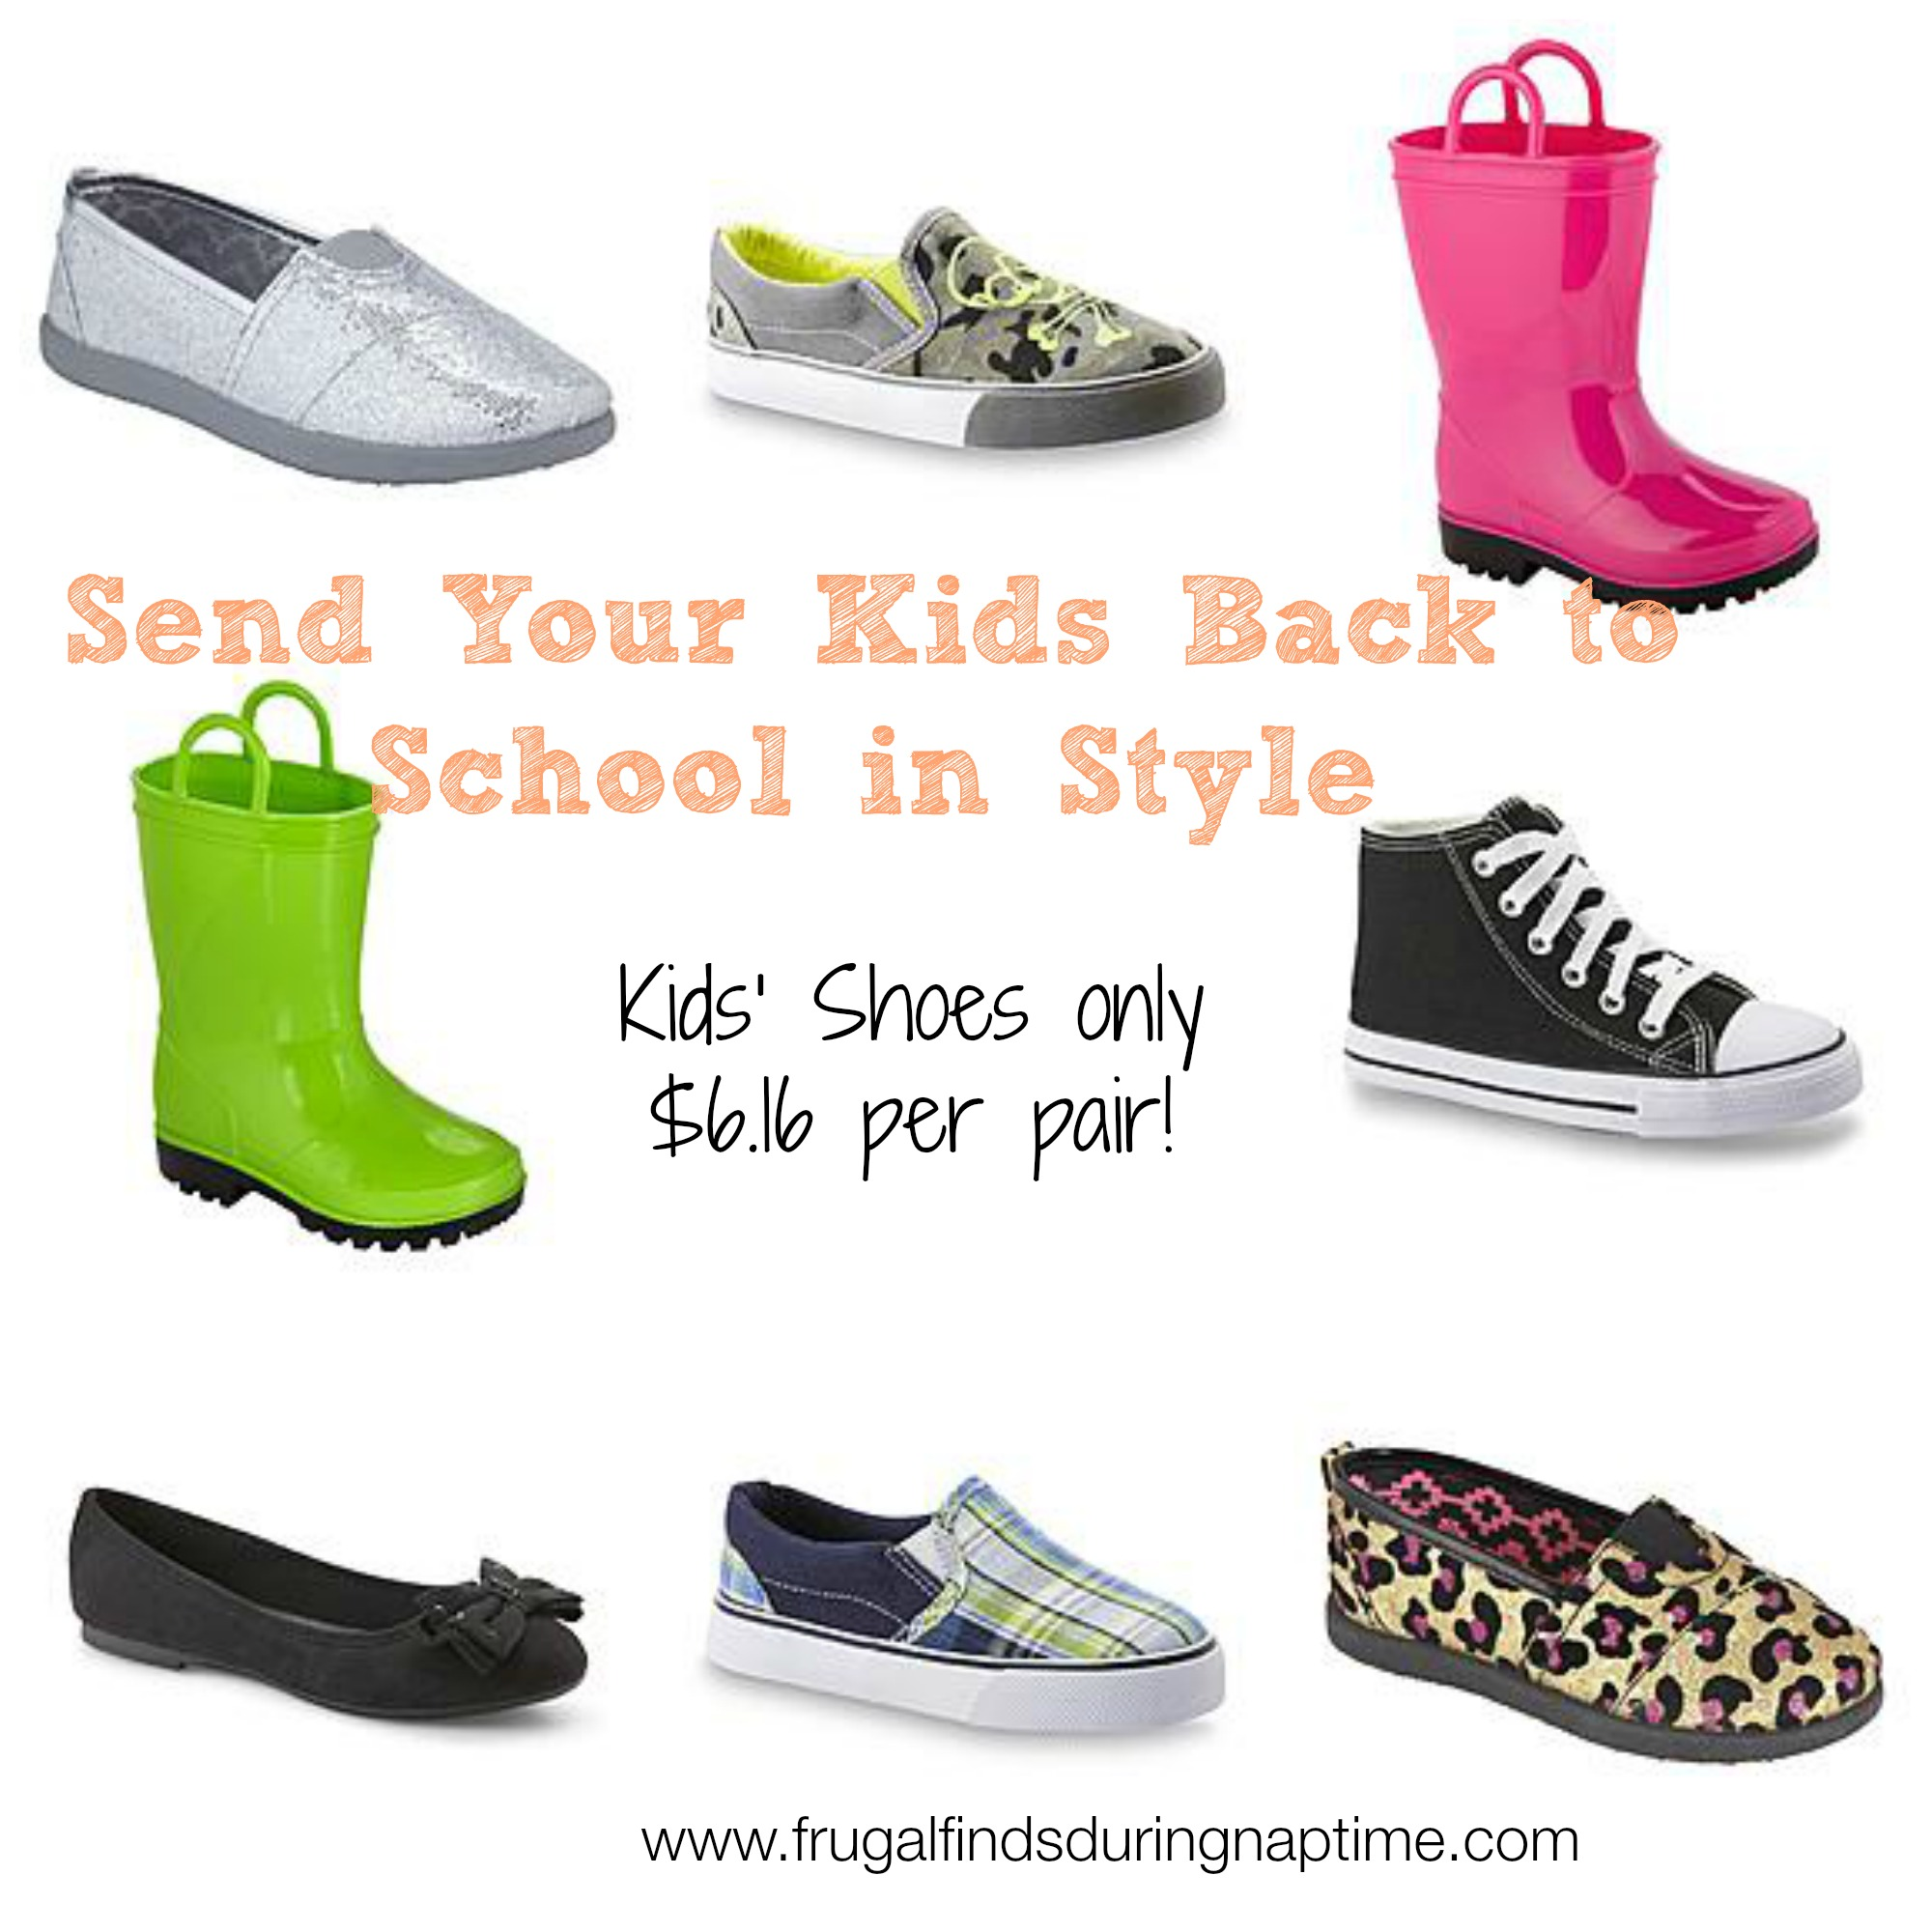 Kmart:: Kids Shoes Only $6.16 Per Pair